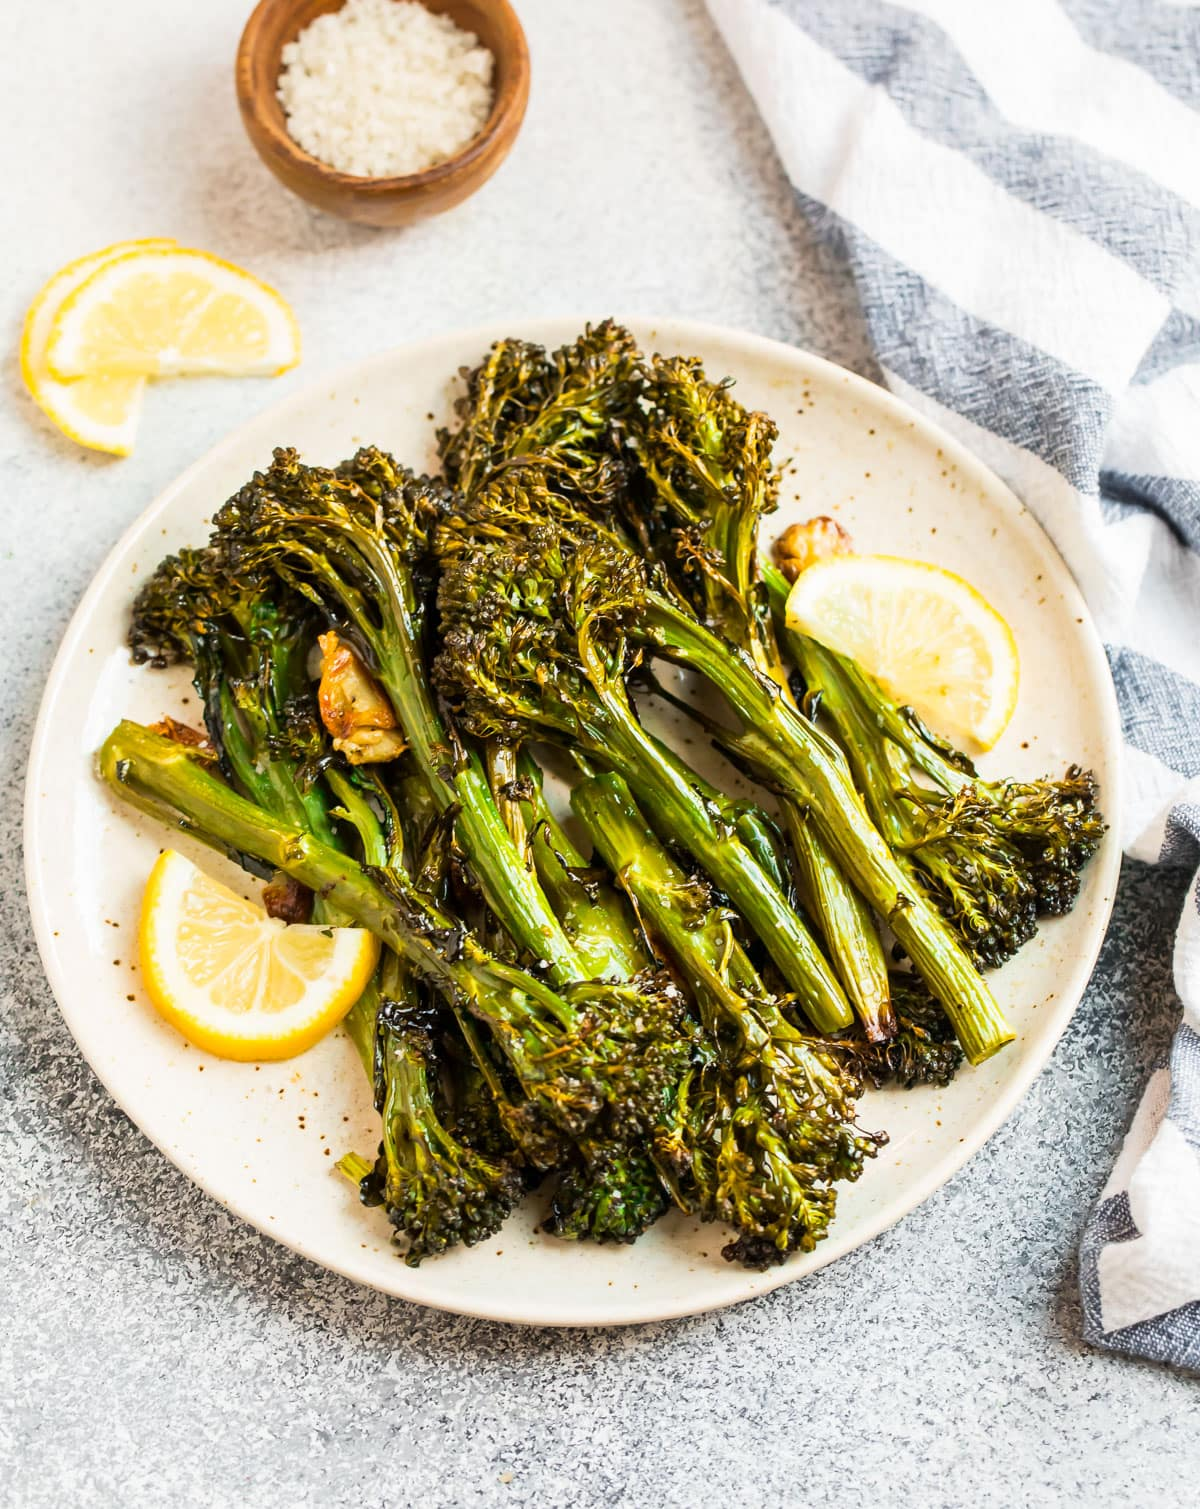 Lemons and roasted broccolini on a plate